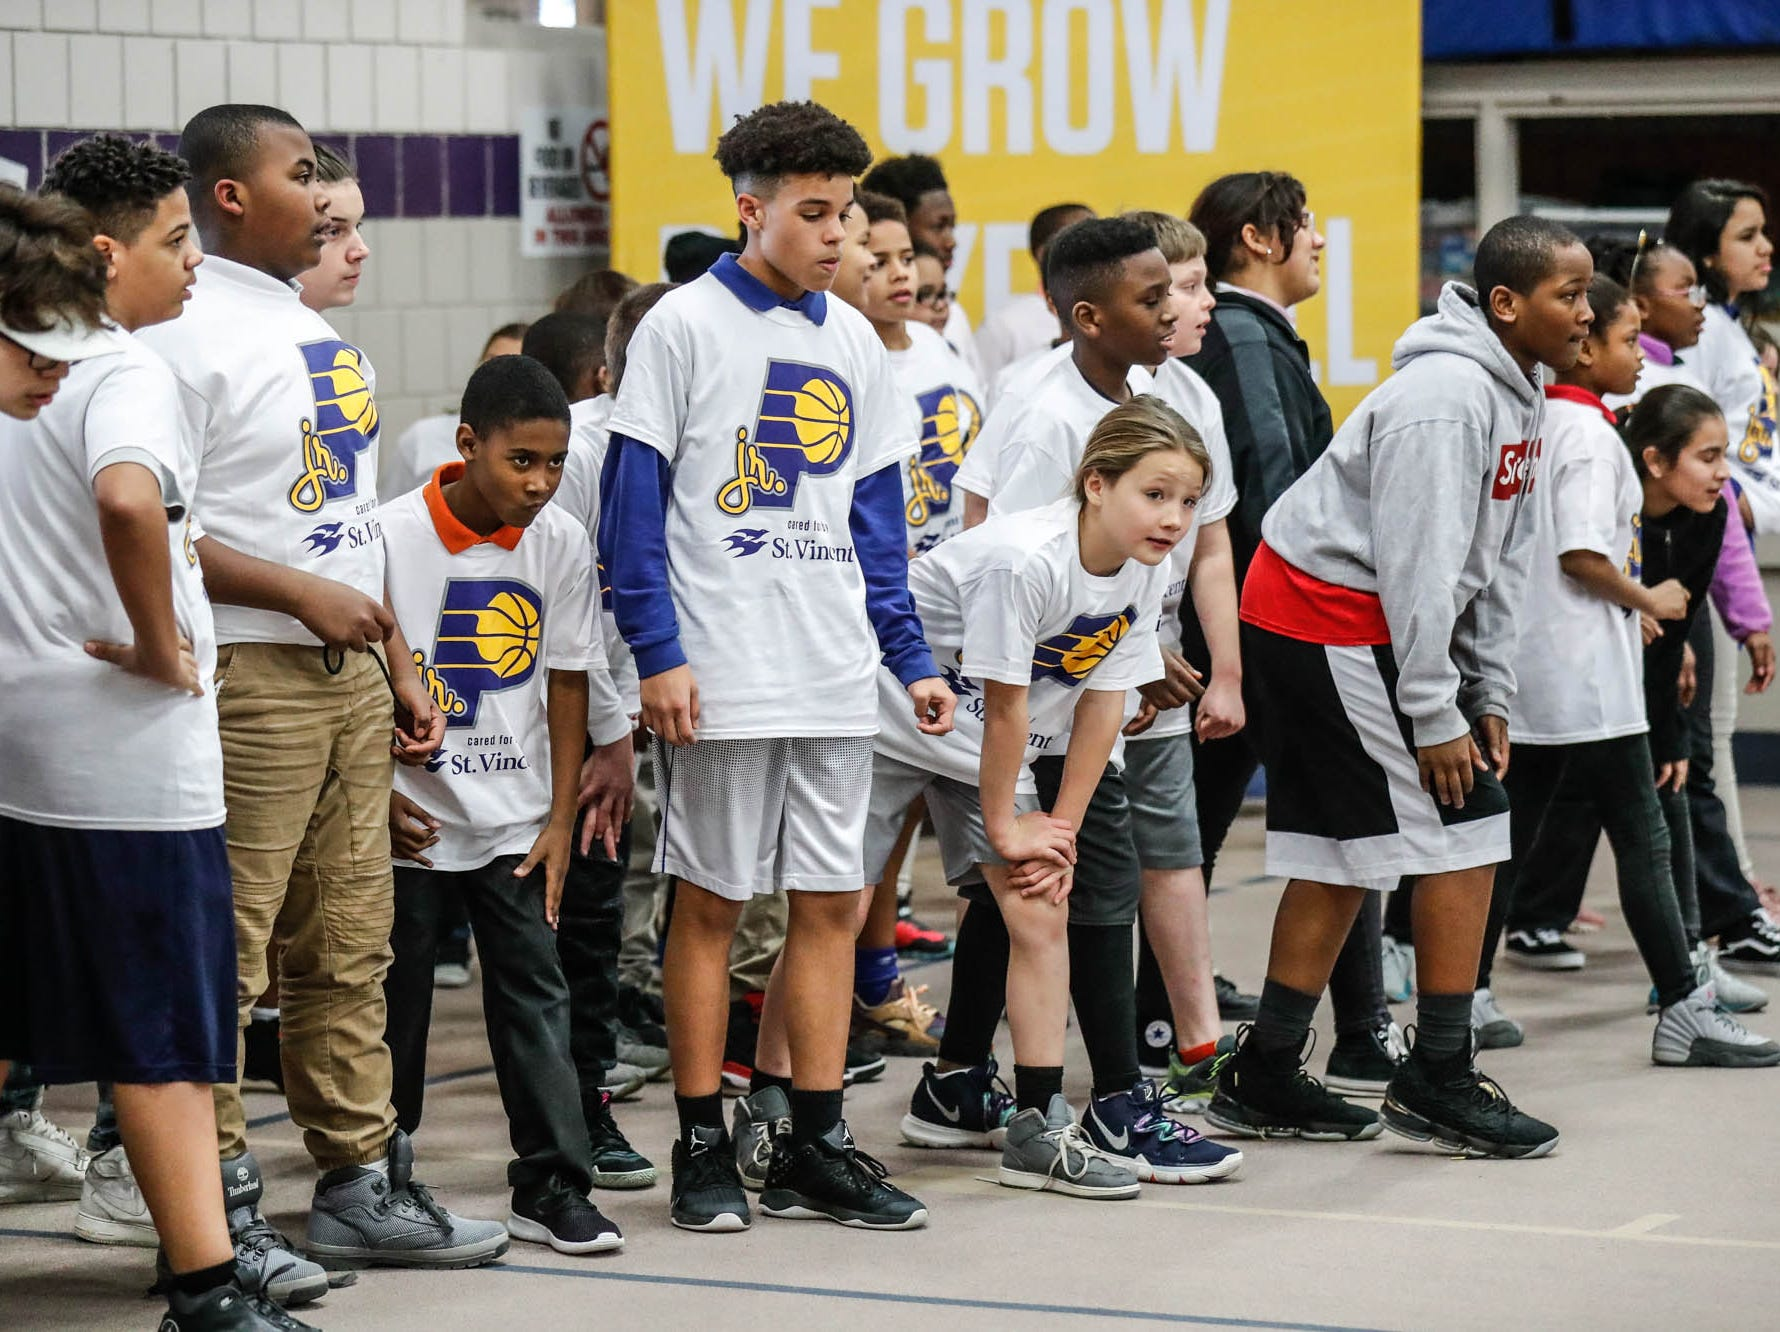 Children at Concord Neighborhood Center line up for high knees during a Jr. Indiana Pacers clinic, which included a surprise visit by Indiana Pacers guard Victor Oladipo on Monday, Jan. 14, 2019.